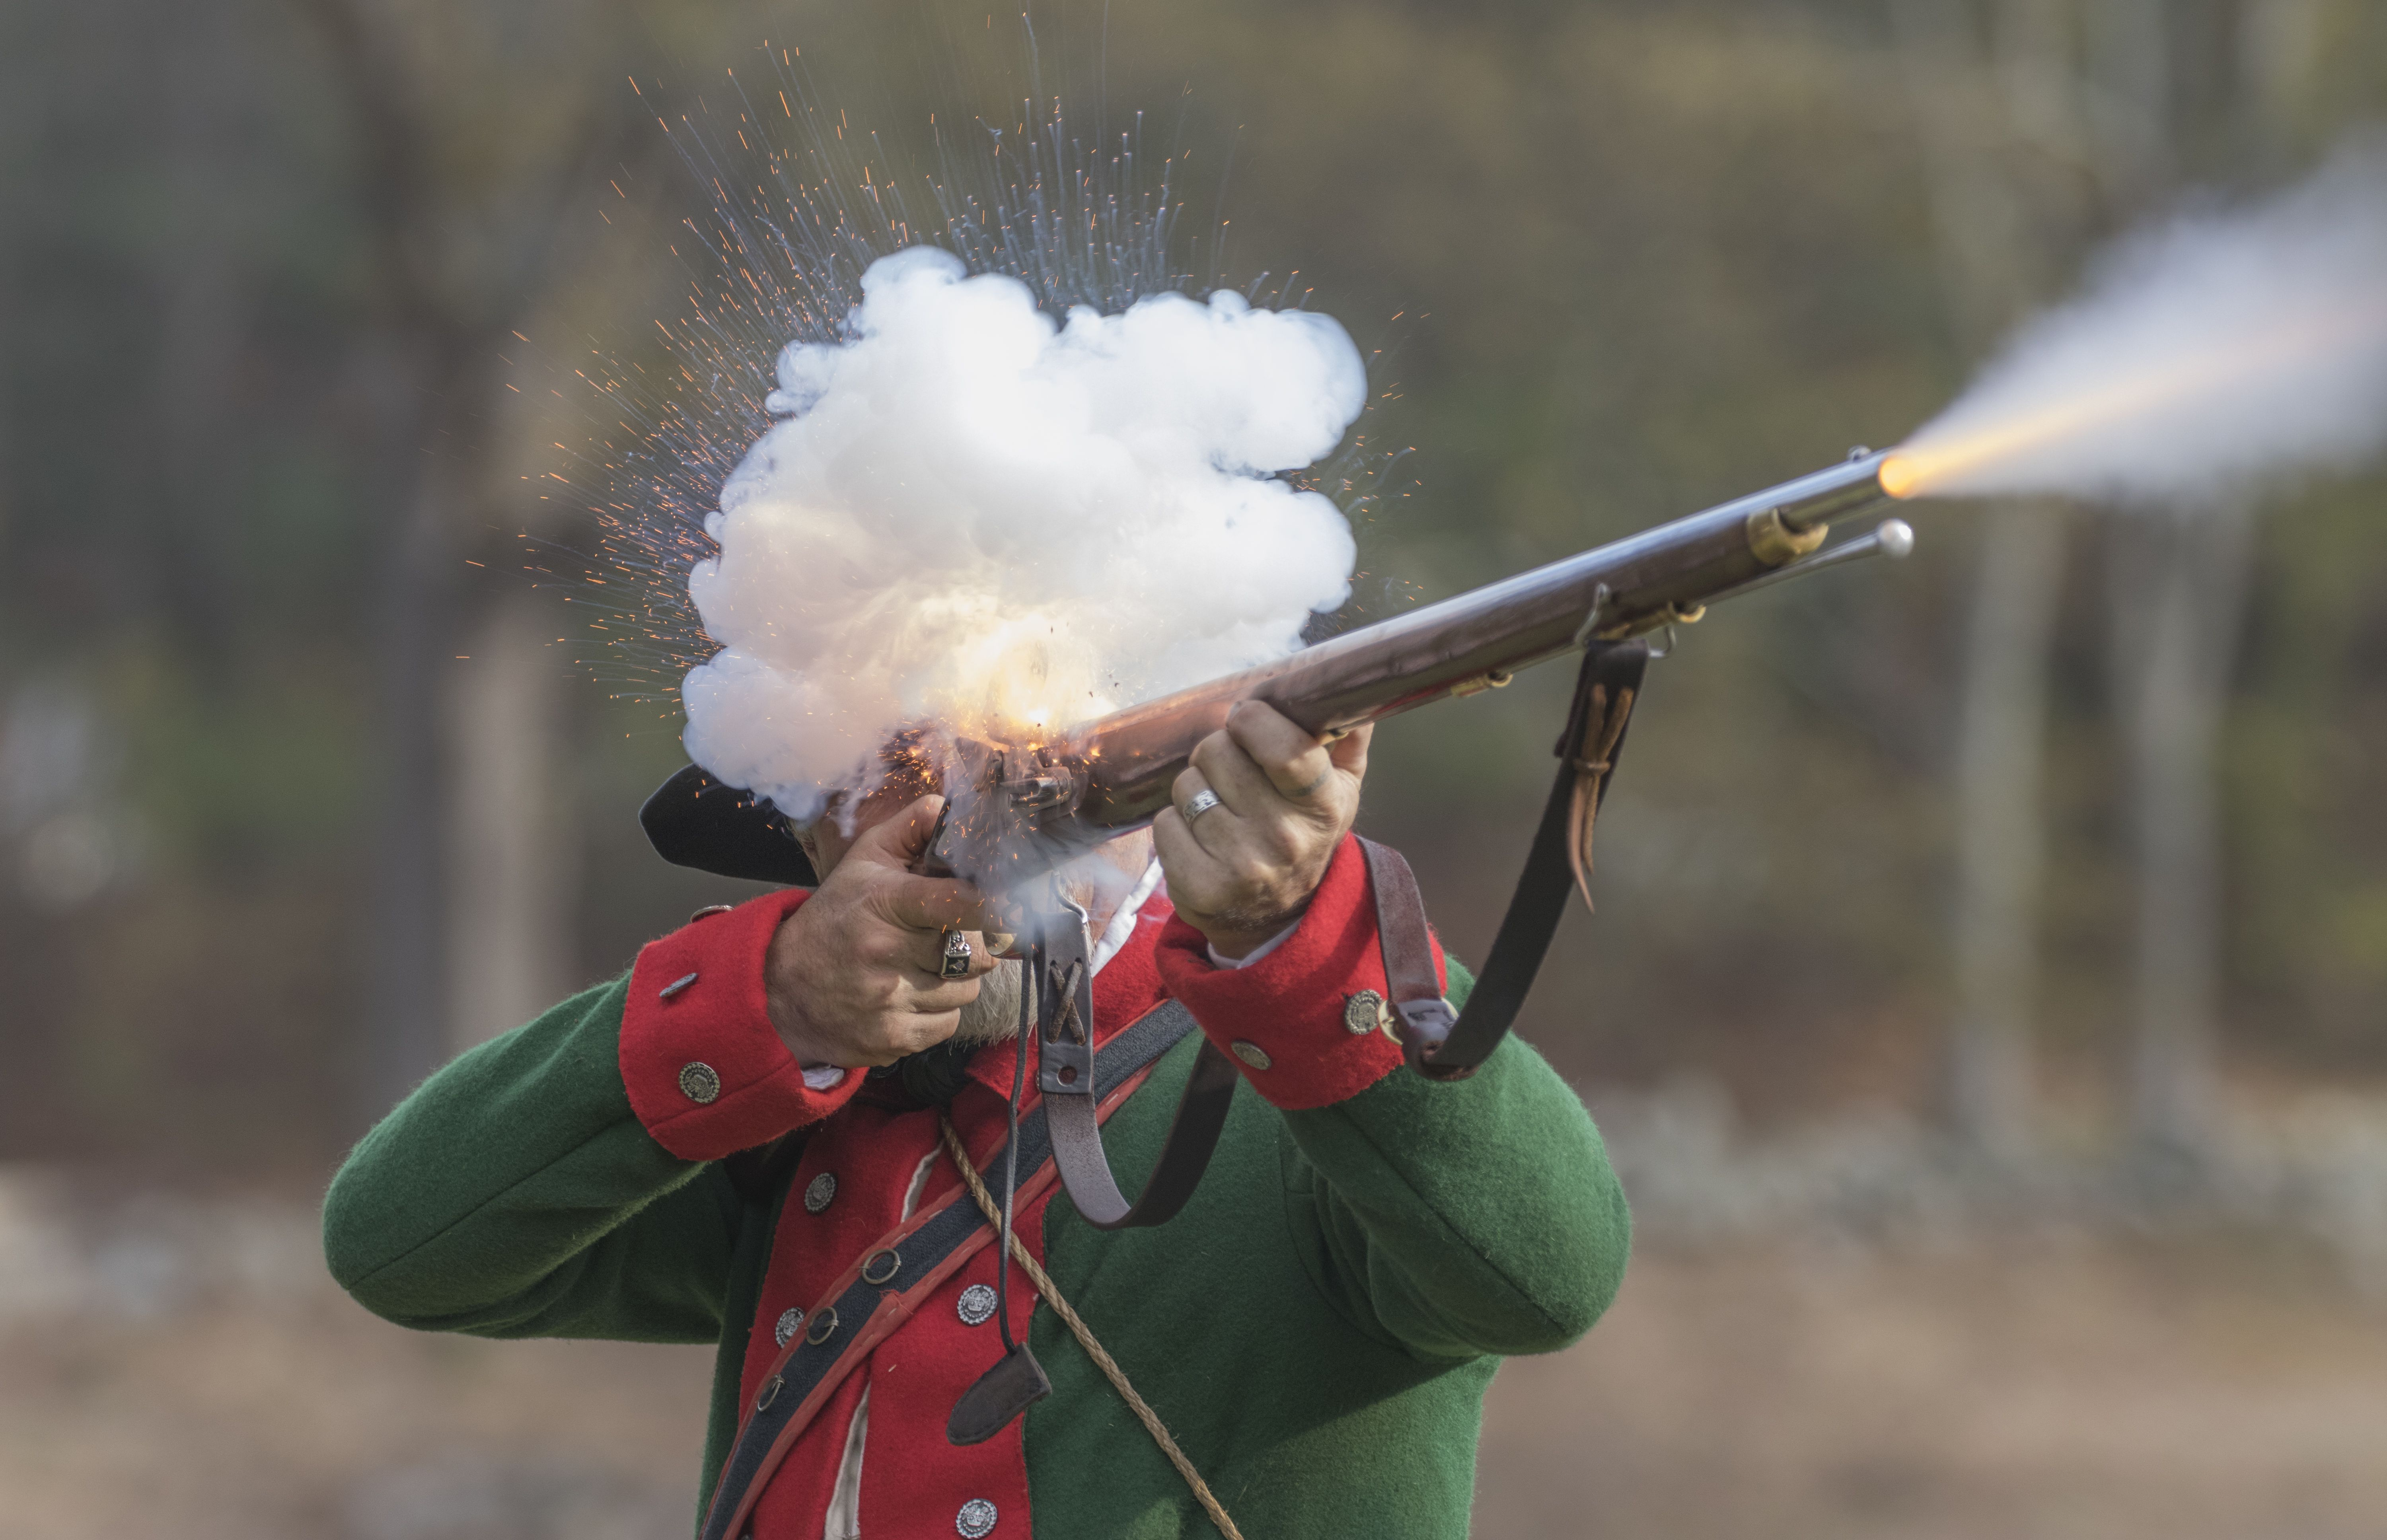 A Revolutionary War reenactor, representing a British soldier, fires his musket at a reenactment of the Battle of the Red Horse Tavern in Sudbury, Massachusetts. The annual reenactments involve several hundred people posing as soldiers on both sides of the battle.